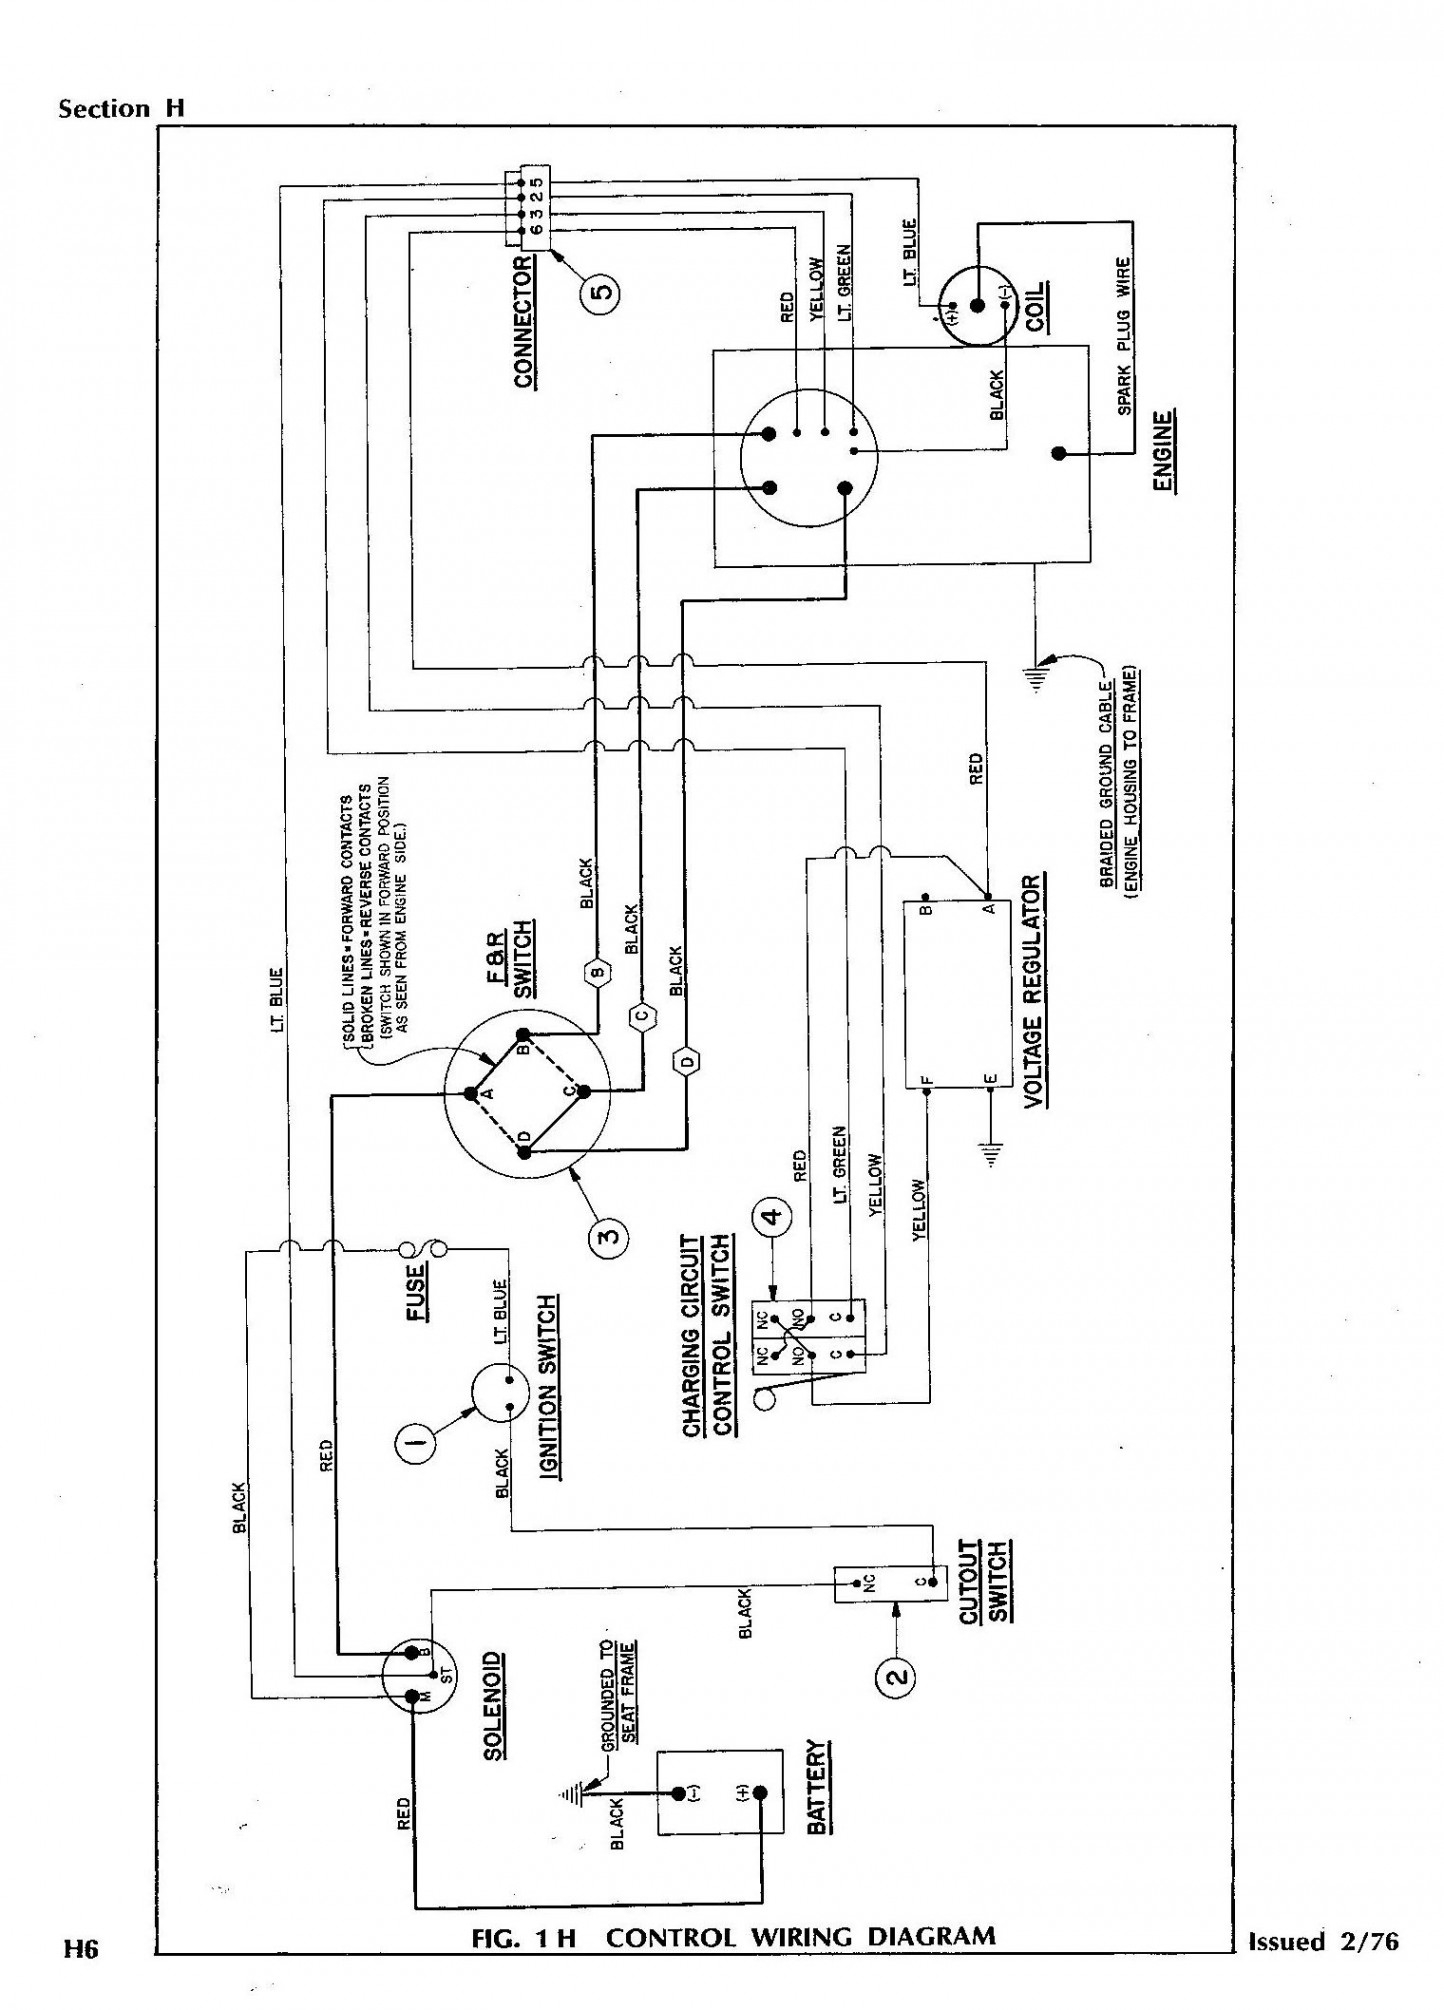 Wiring Diagram Ezgo Gas Golf Cart